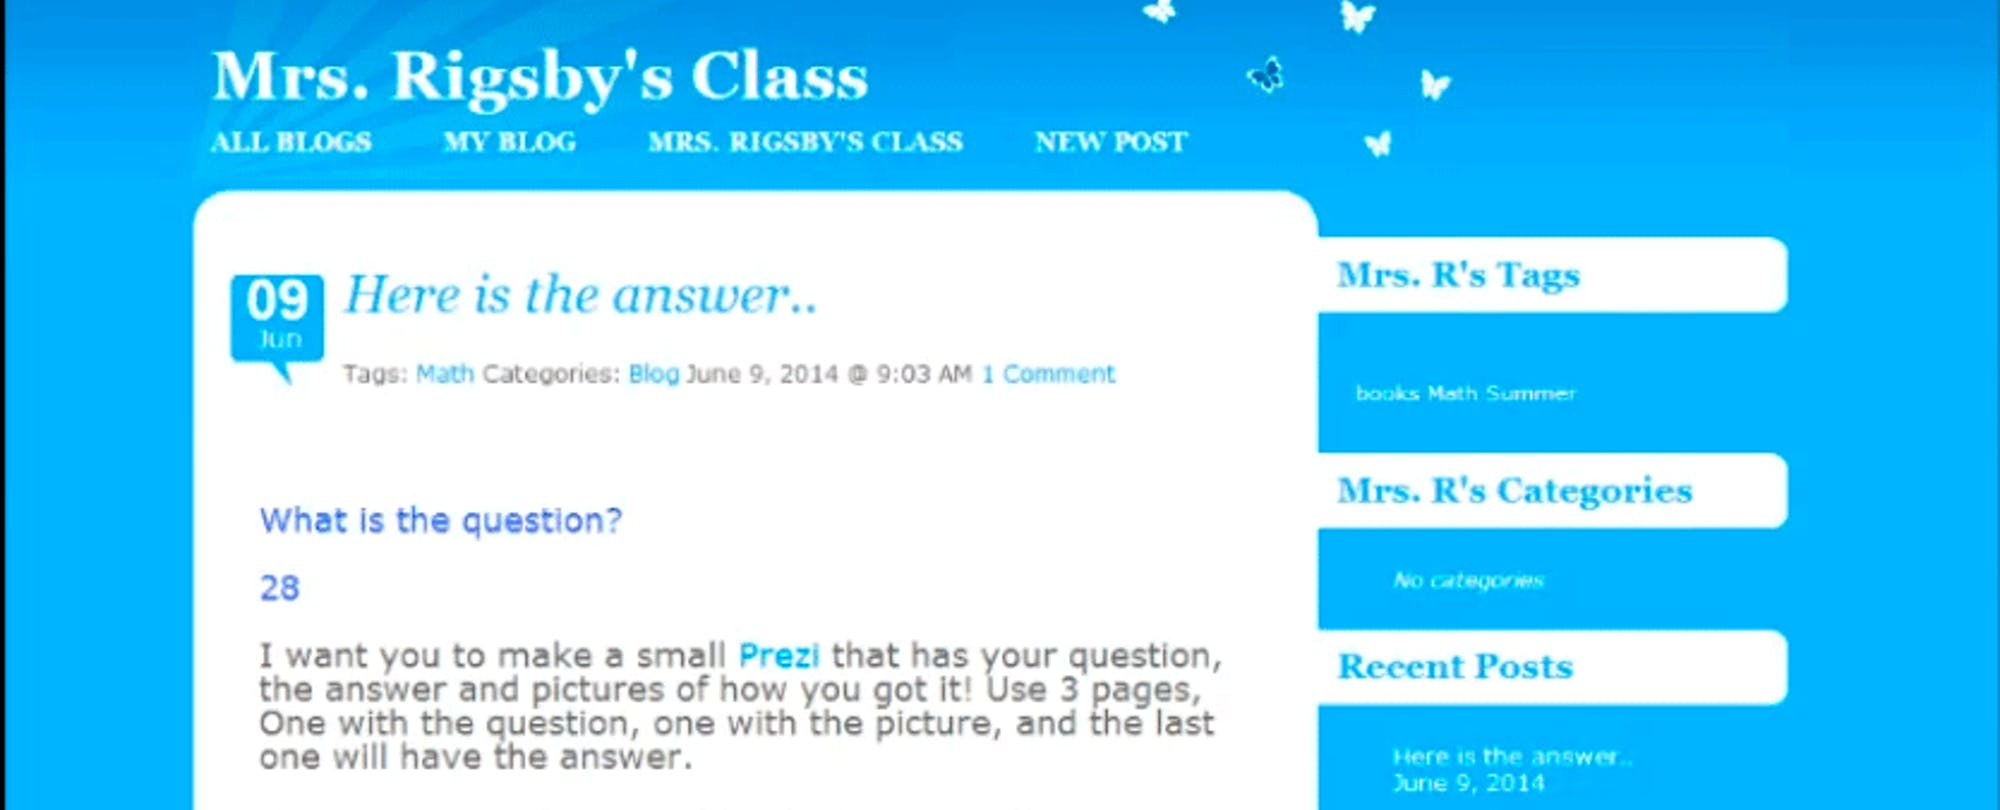 Self-Expression at a Young Age: Bringing Blogging to the Classroom